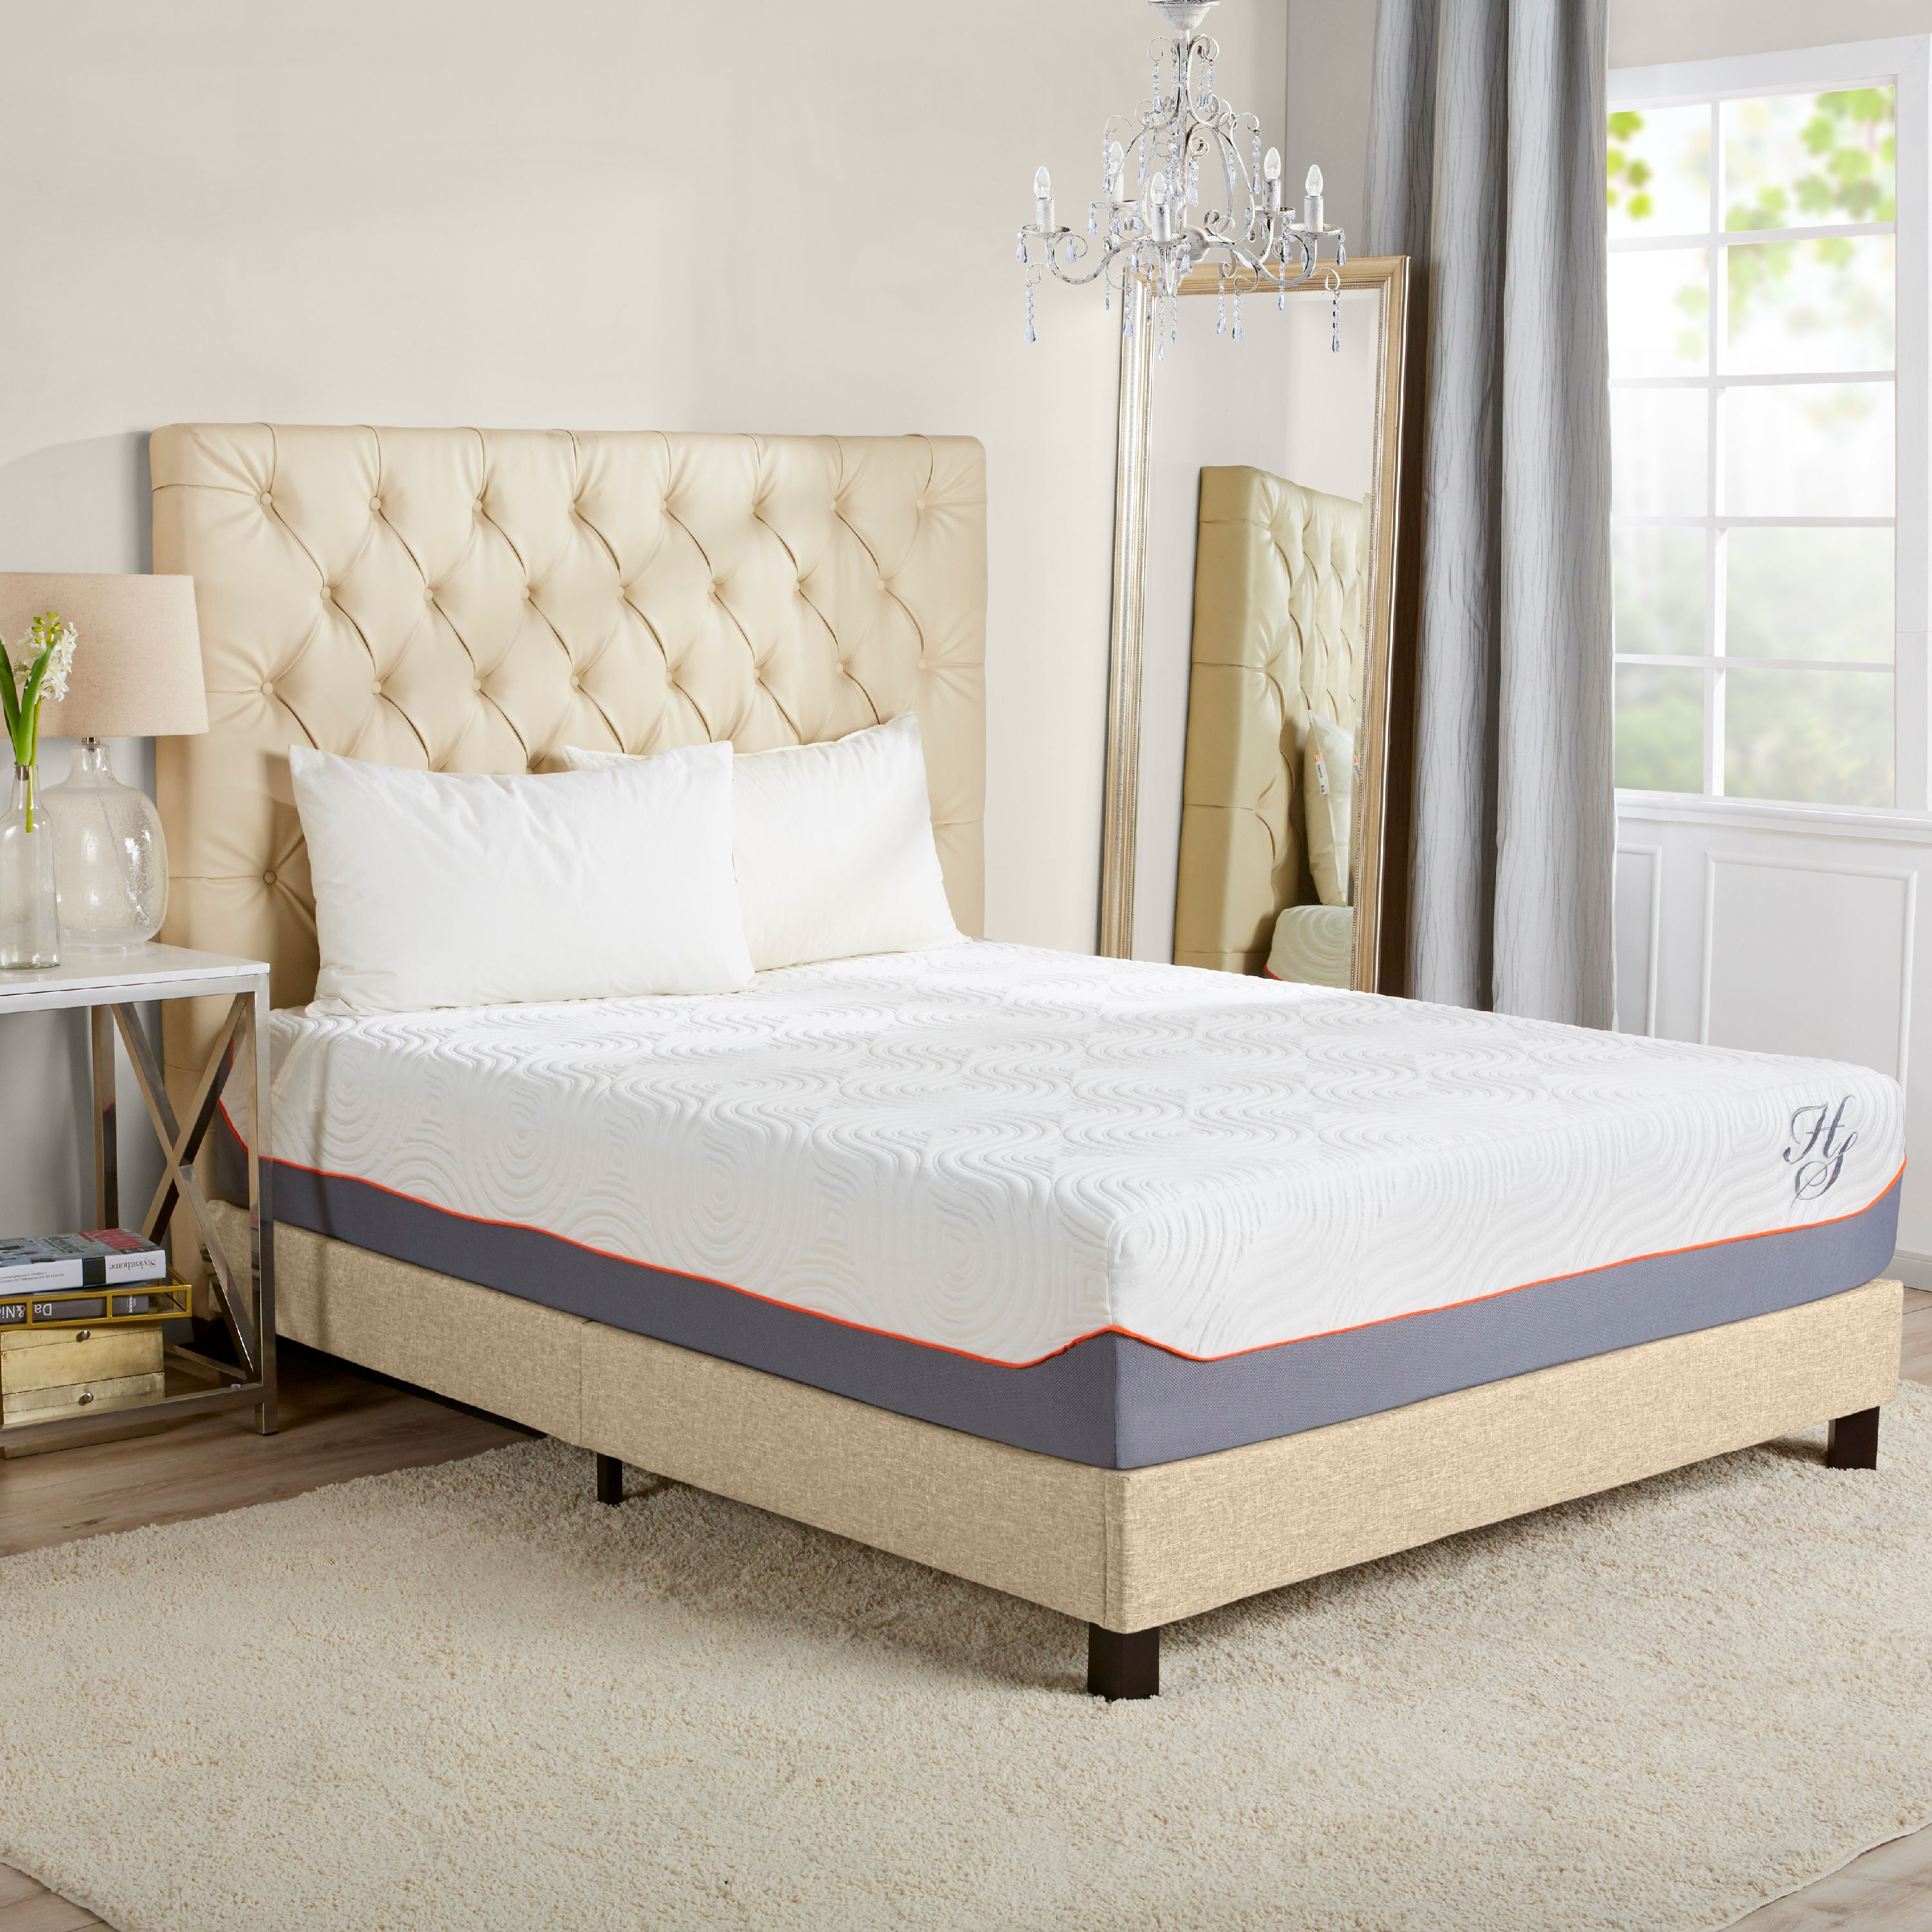 "Hotel Style 14"" Cooling Memory Foam Hybrid iCoil Spring Mattress"